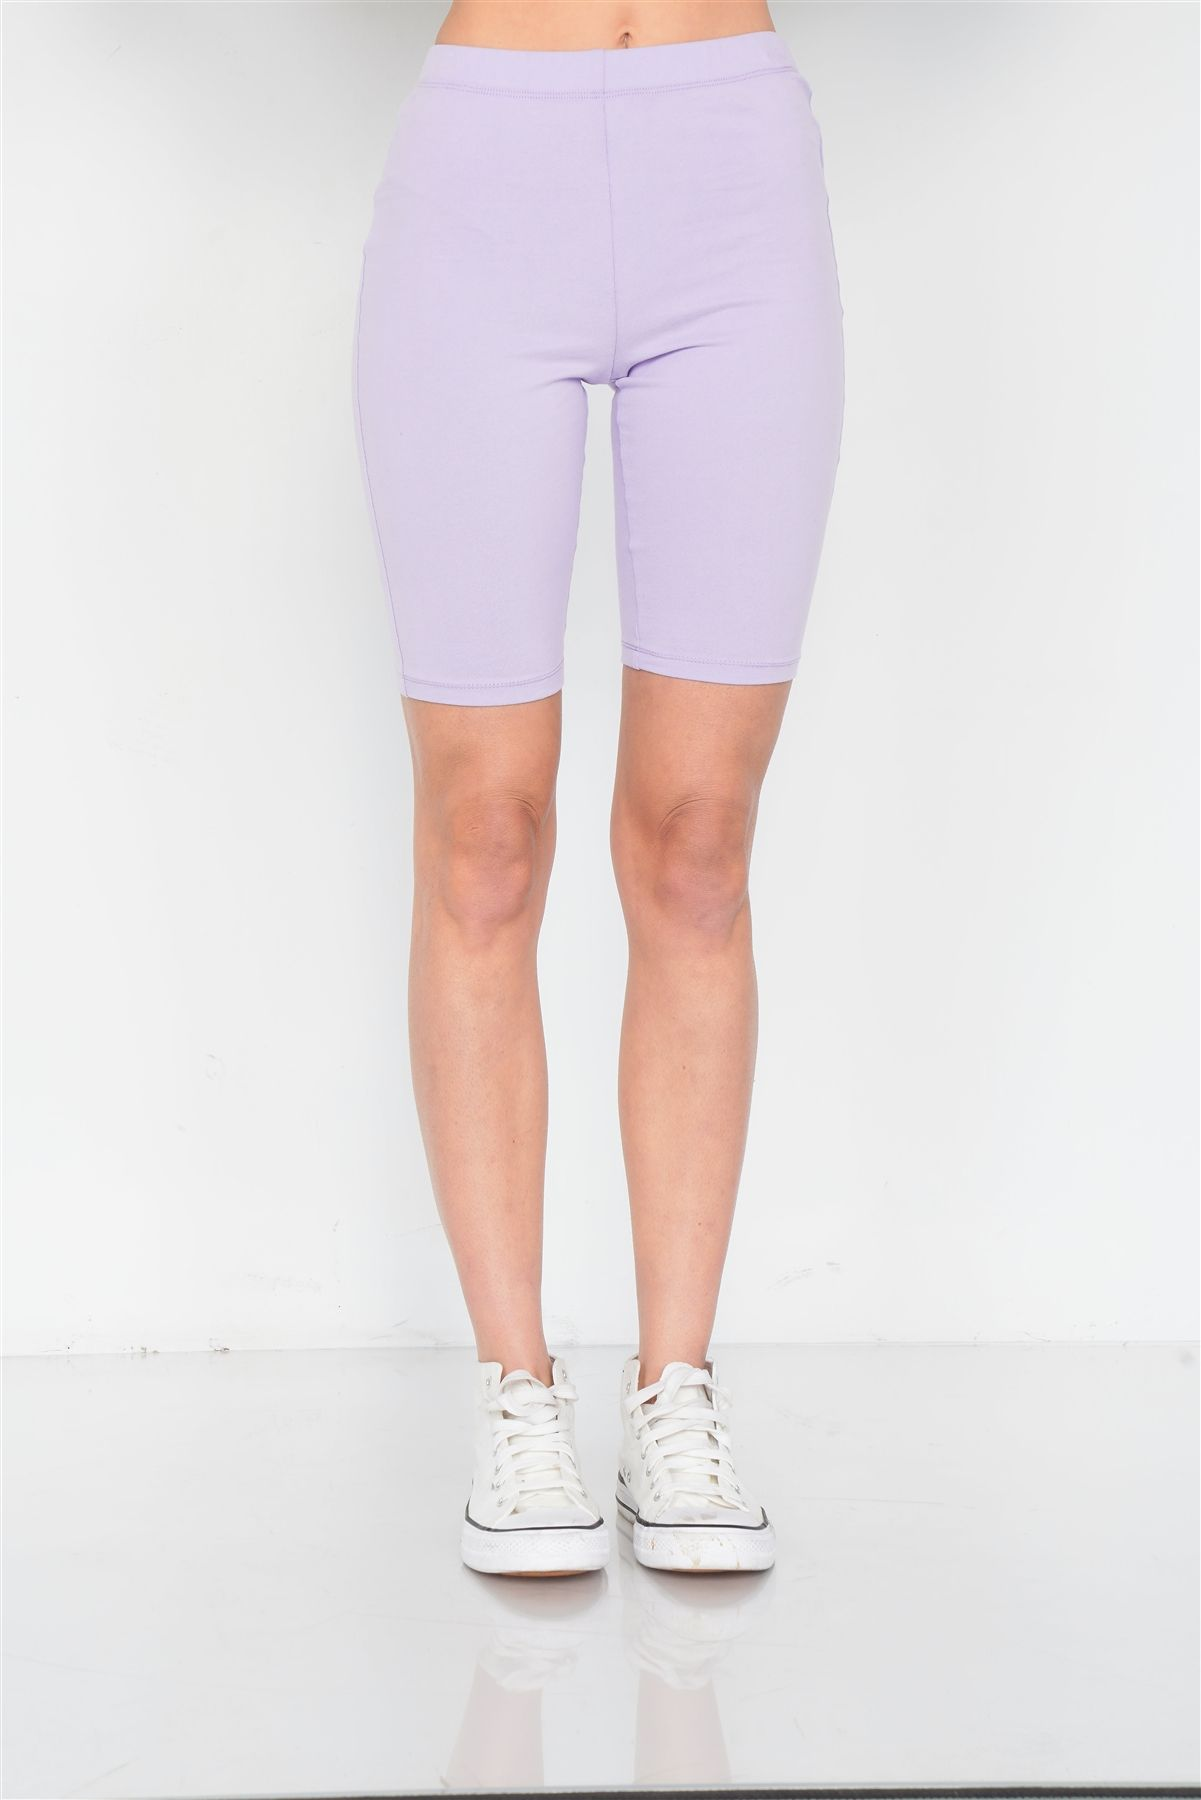 Stretchy Athletic Biker Shorts